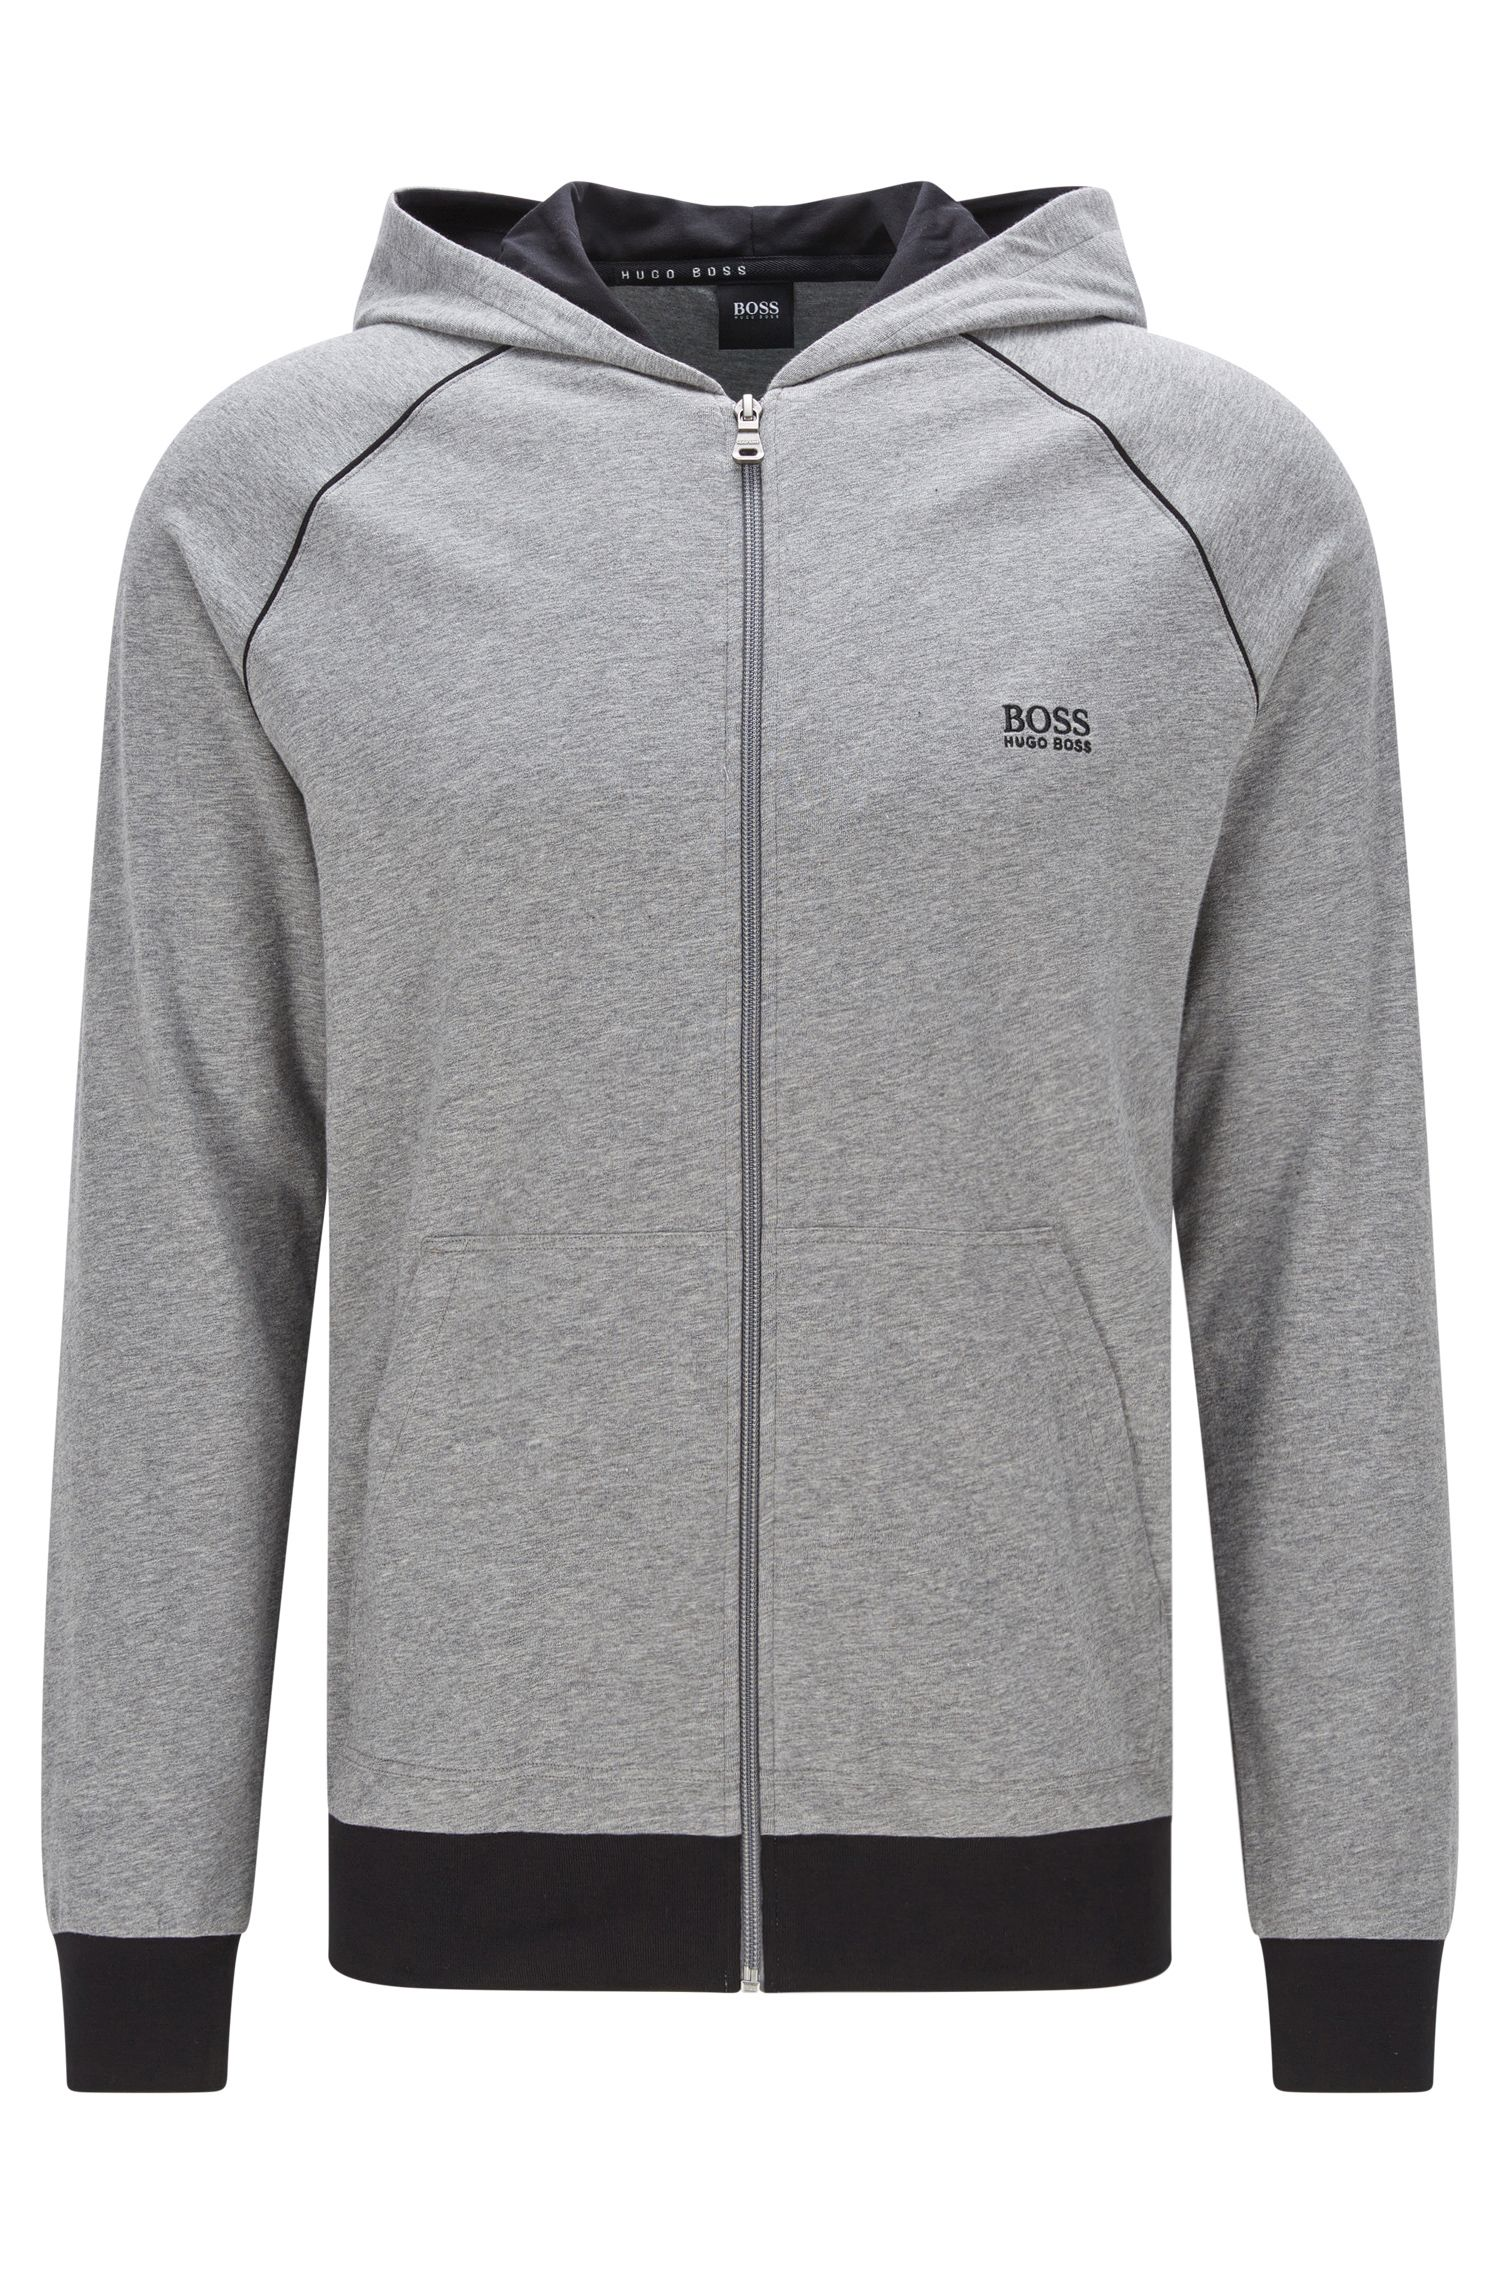 Regular-fit hooded sweatshirt jacket in stretch cotton: 'Jacket Hooded'